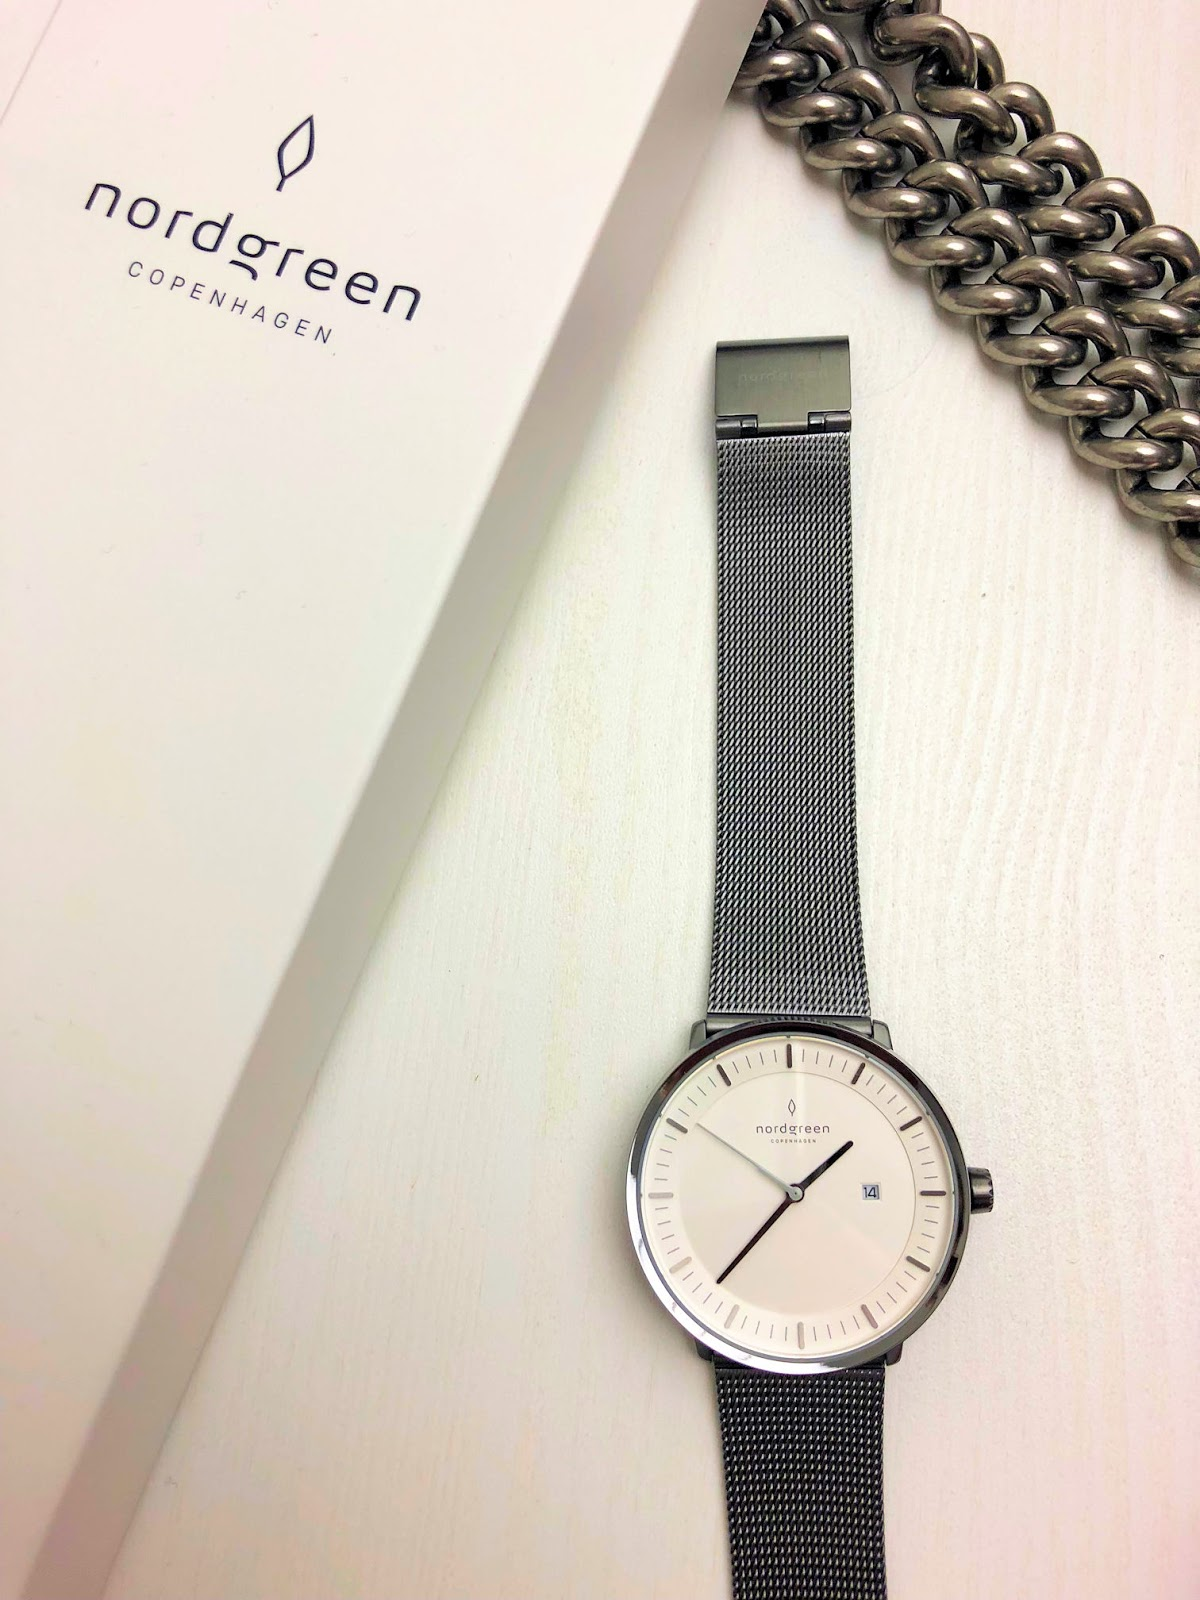 Nordgreen watches: Philosopher Gun Metal Mesh watch review on Fashion and Cookies fashion blog, fashion blogger style